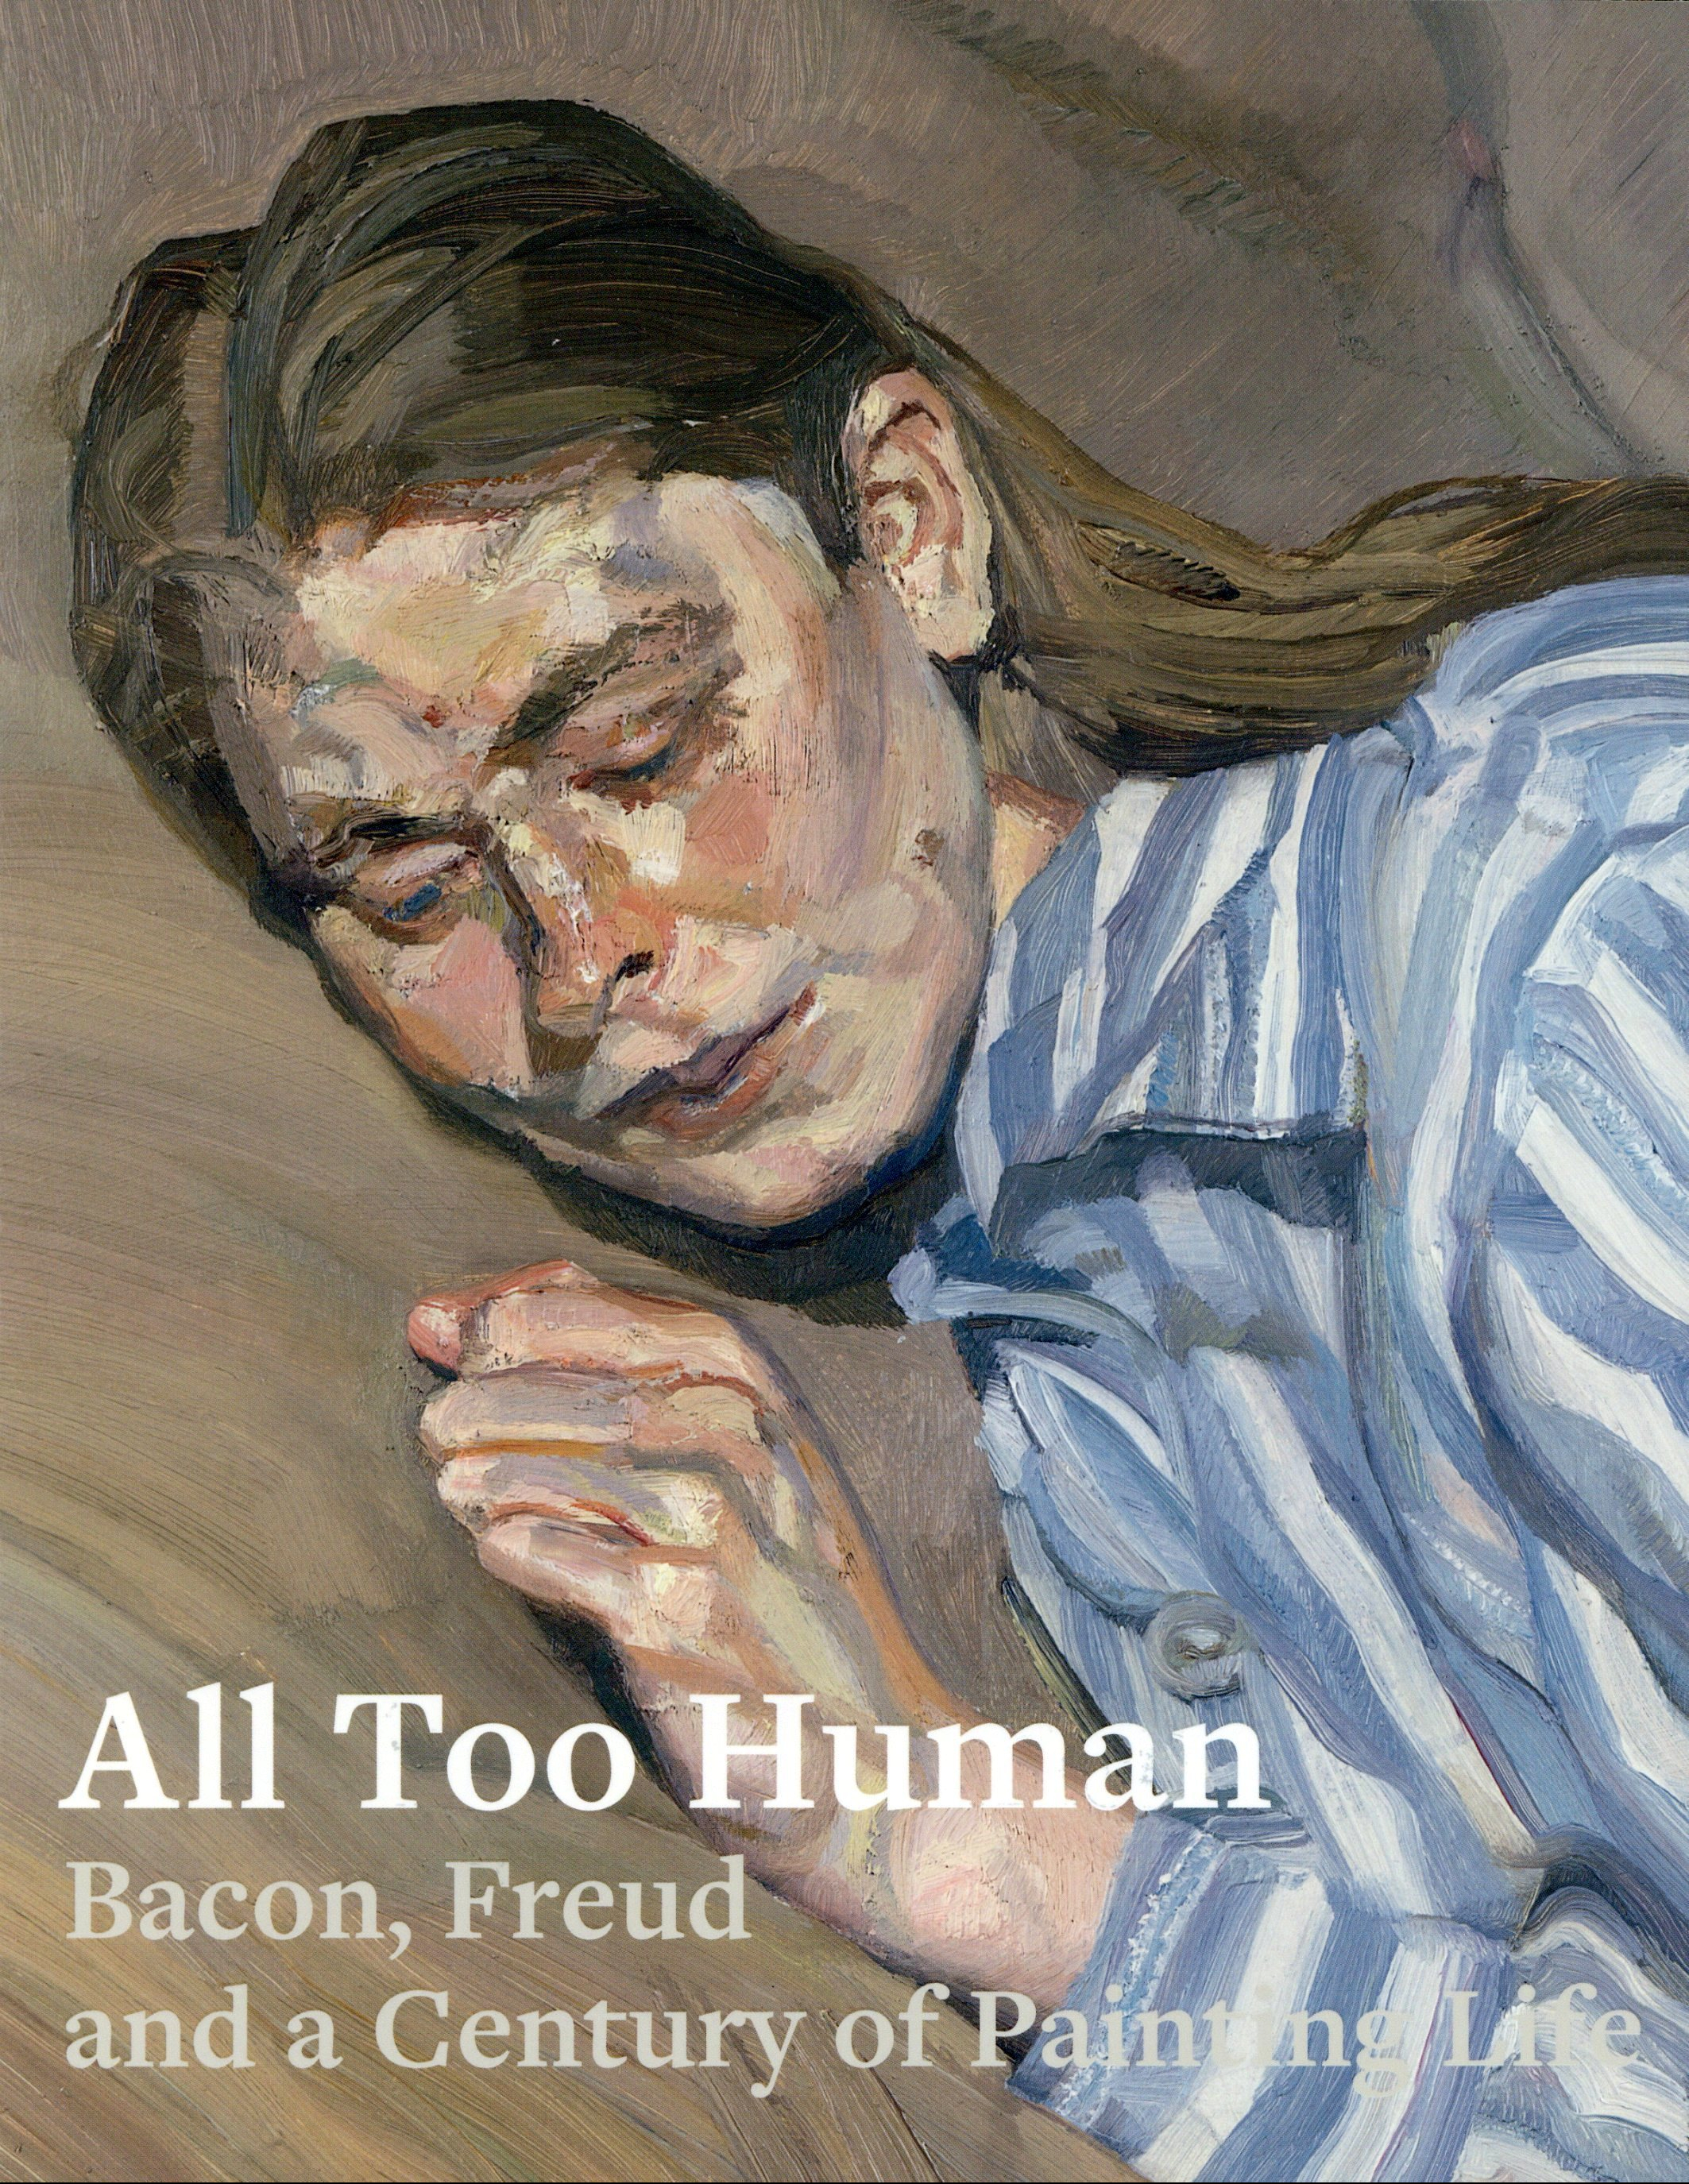 9c3dd2592ff6bfe8031ee61e7e9e2f41_all-too-human-bacon-freud-and-century-of-painting-life-tate.jpg